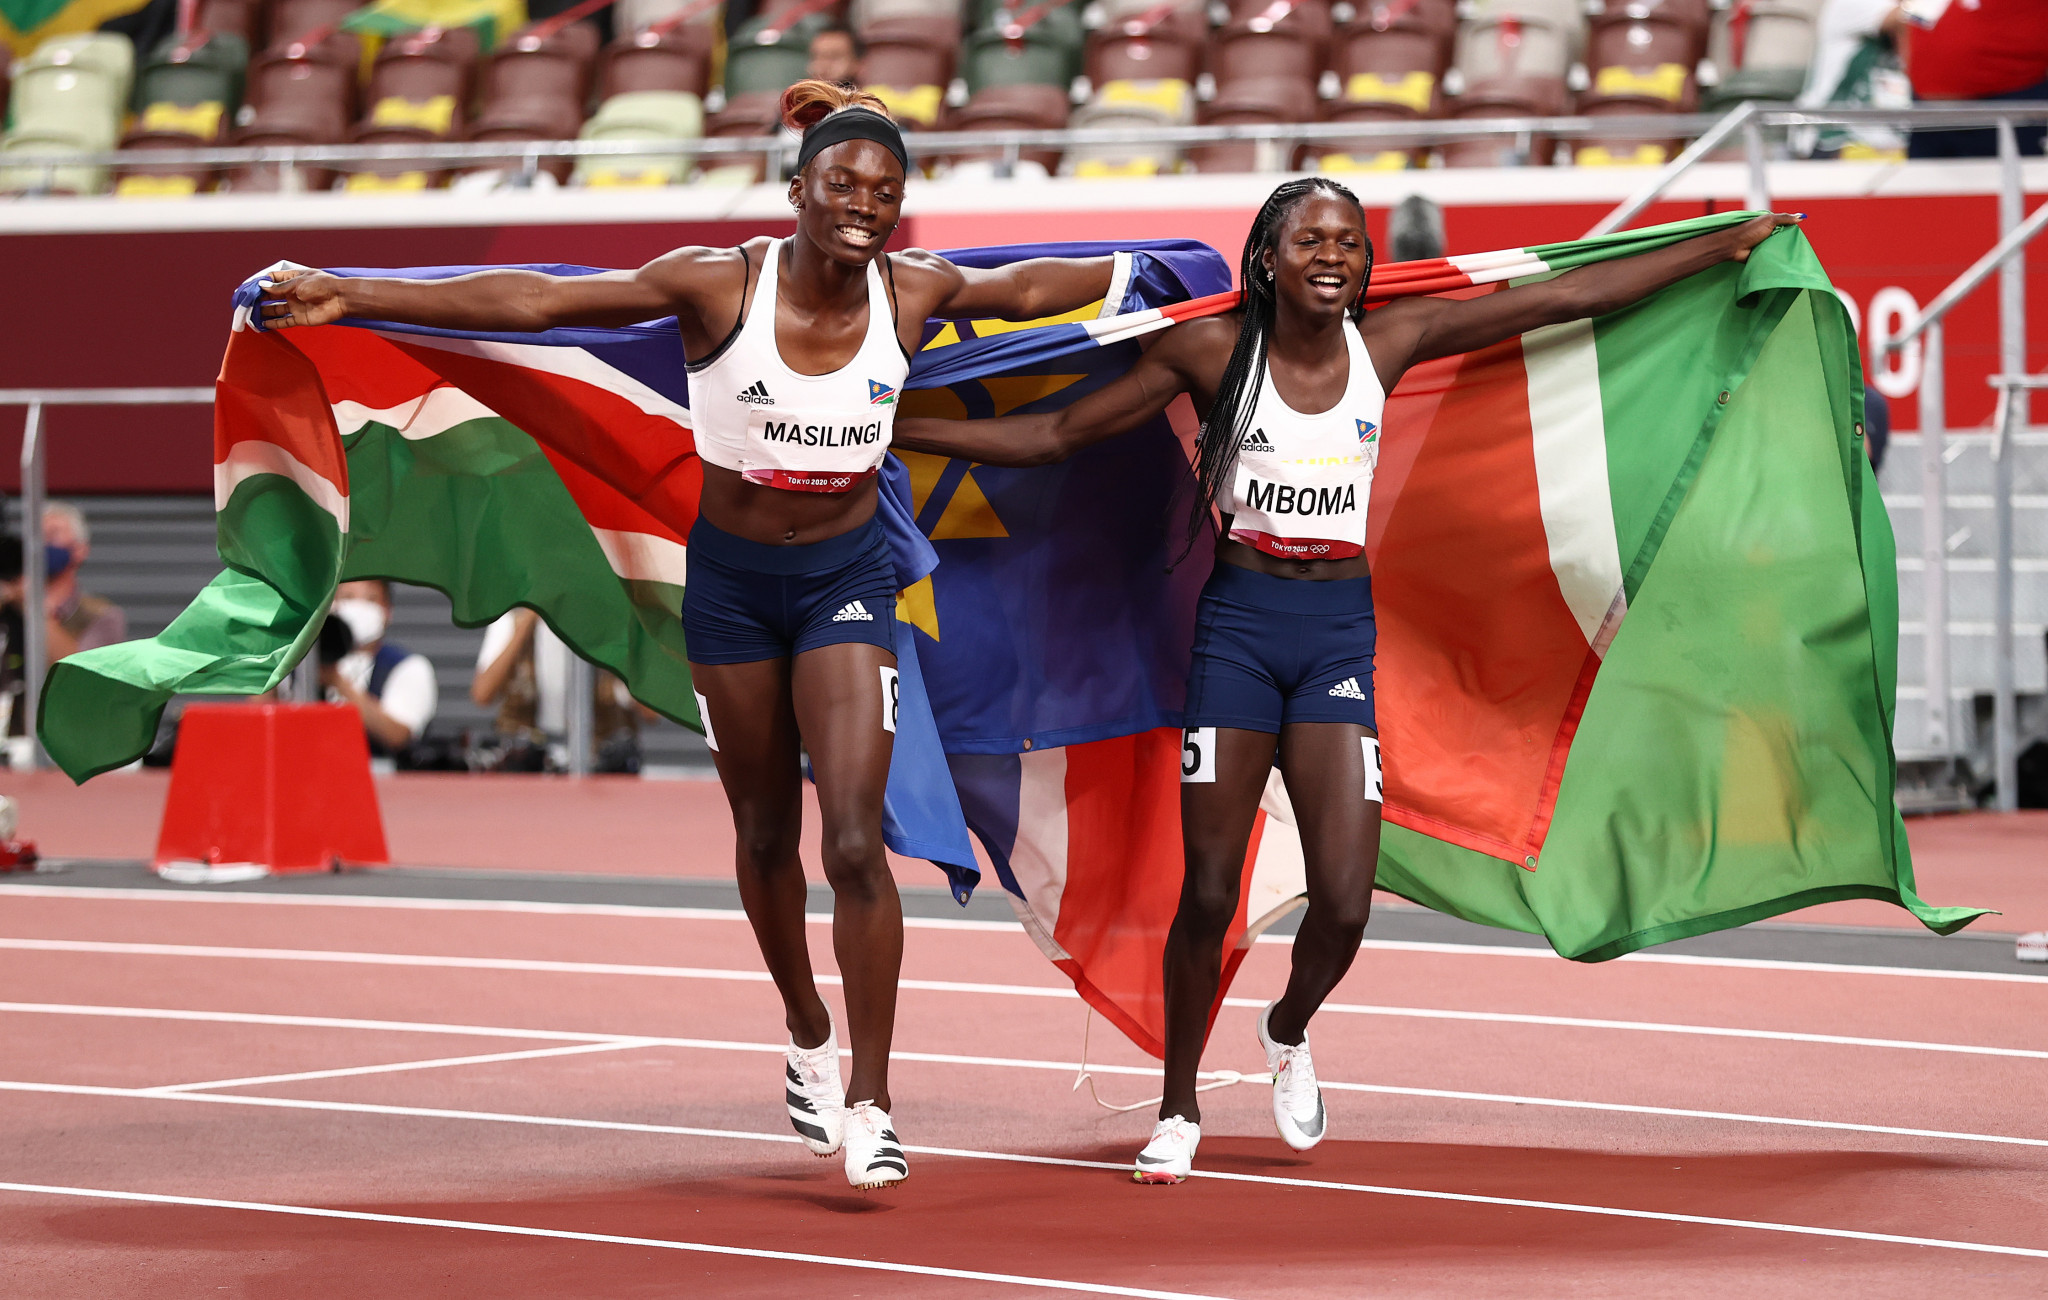 """Tokyo 2020 silver medallist Mboma admits 400m Olympic ban was """"a very bad experience"""""""